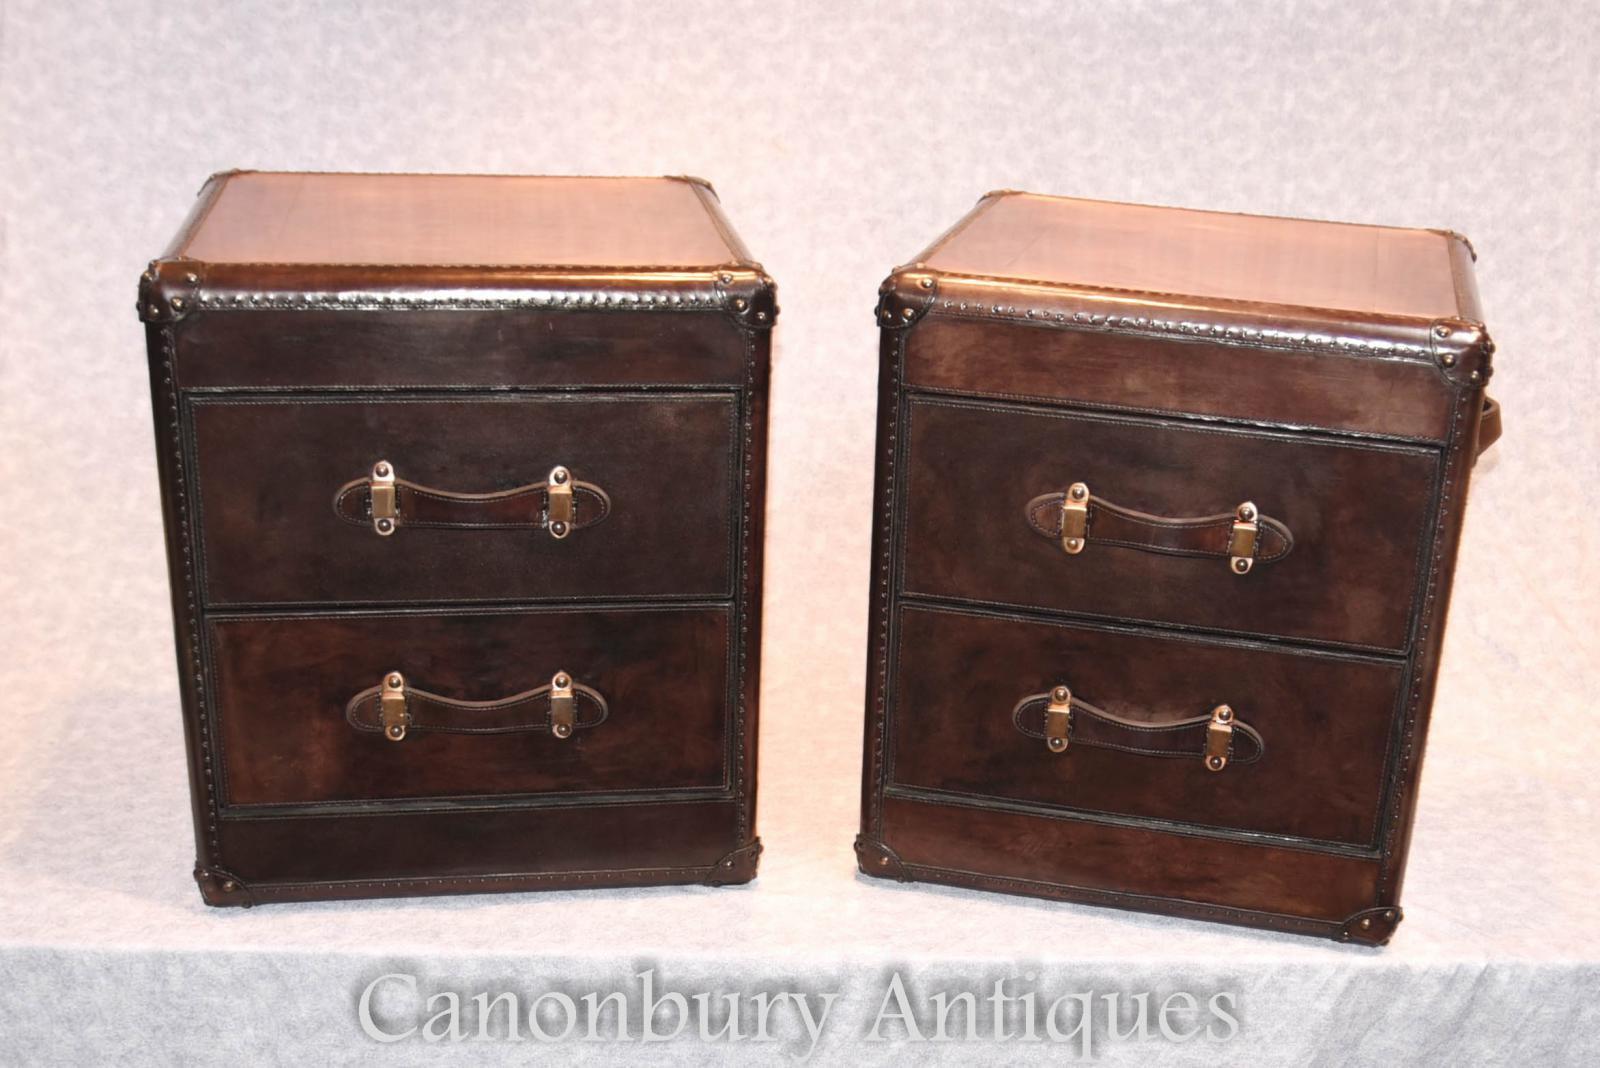 Details about pair leather campaign chests of drawers bedside nightstands colonial furniture